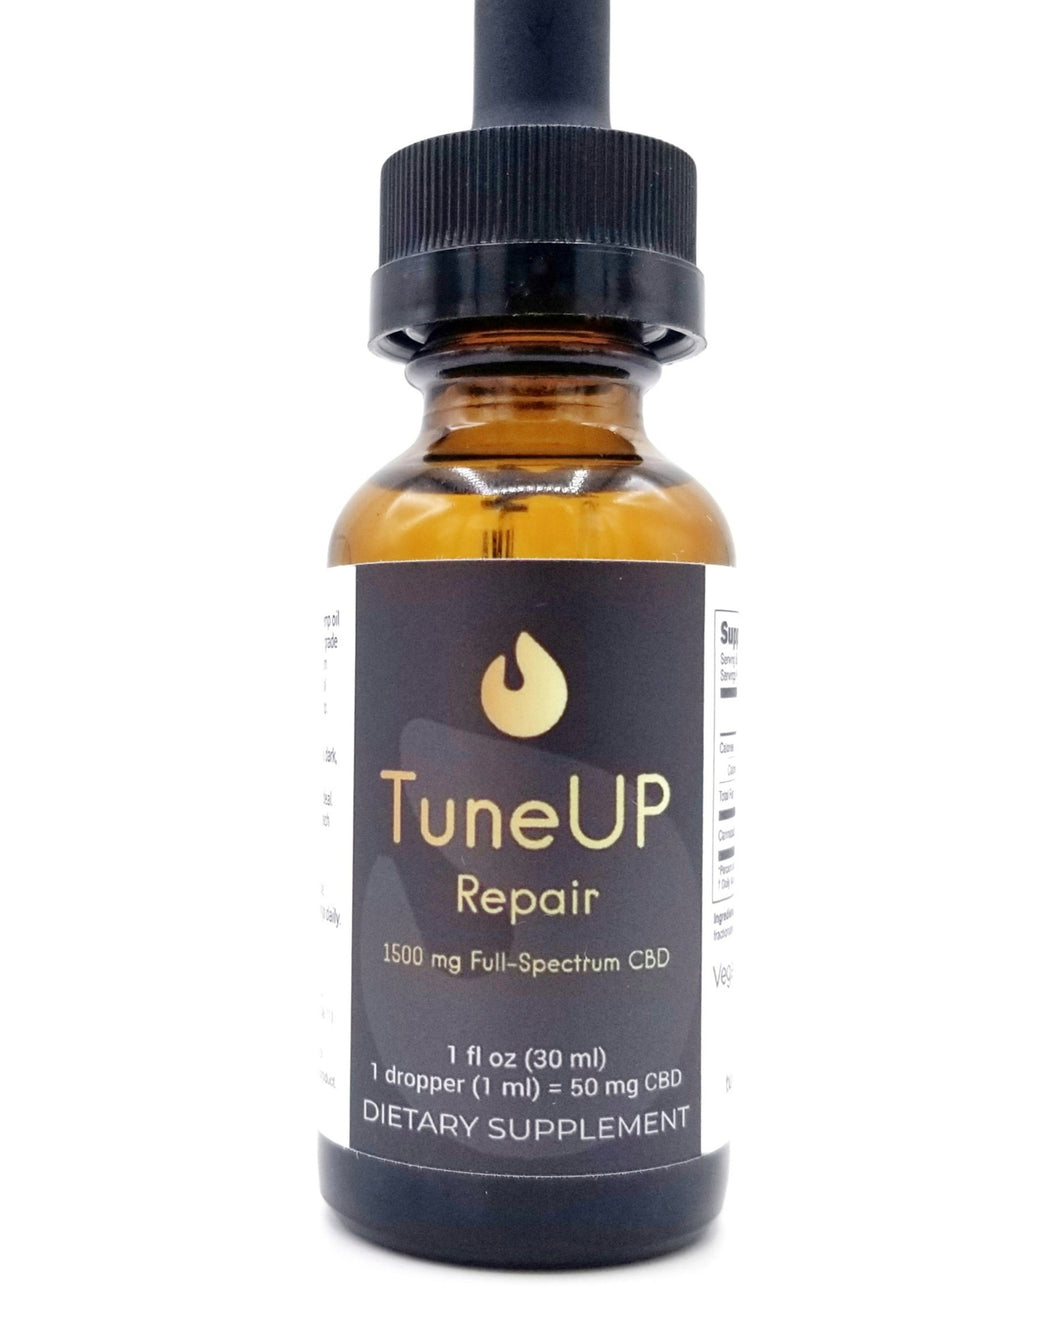 TuneUP 1500 mg Full-Spectrum